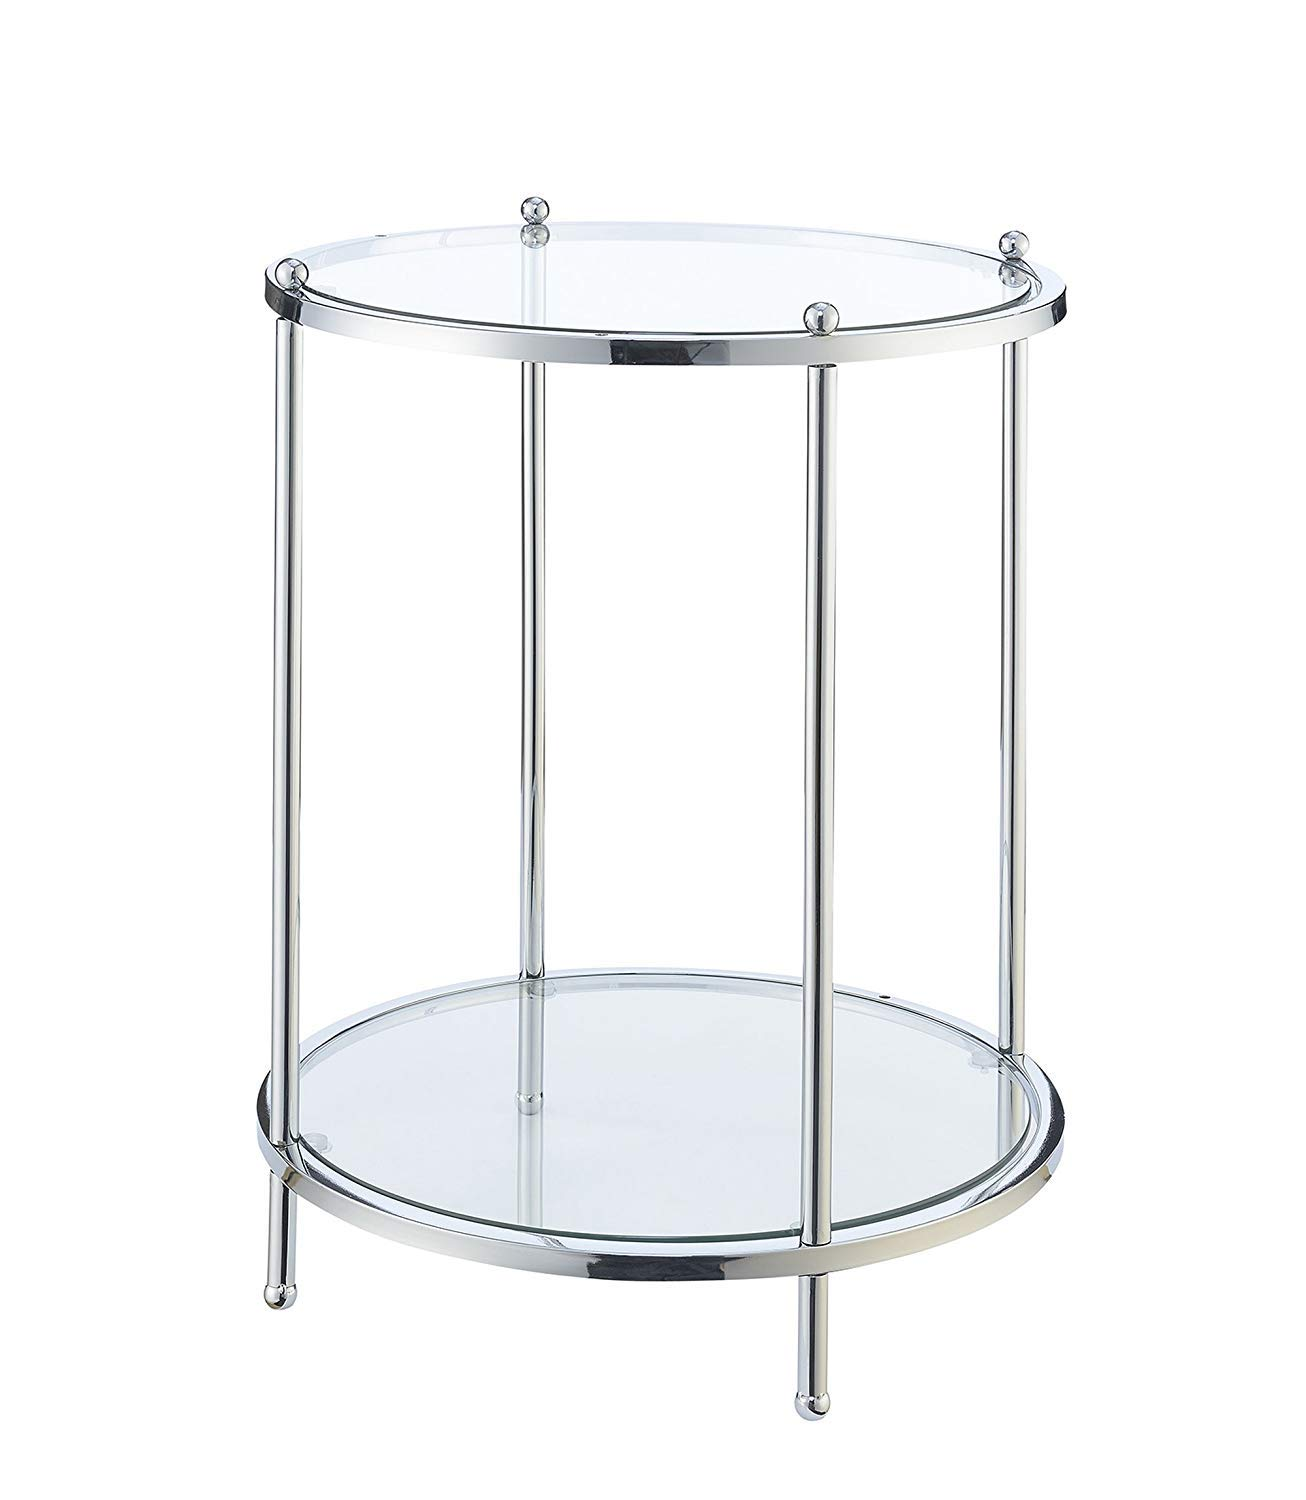 Convenience Concepts 134245 Royal Crest Round End Table, Clear Glass/Chrome Frame by Convenience Concepts